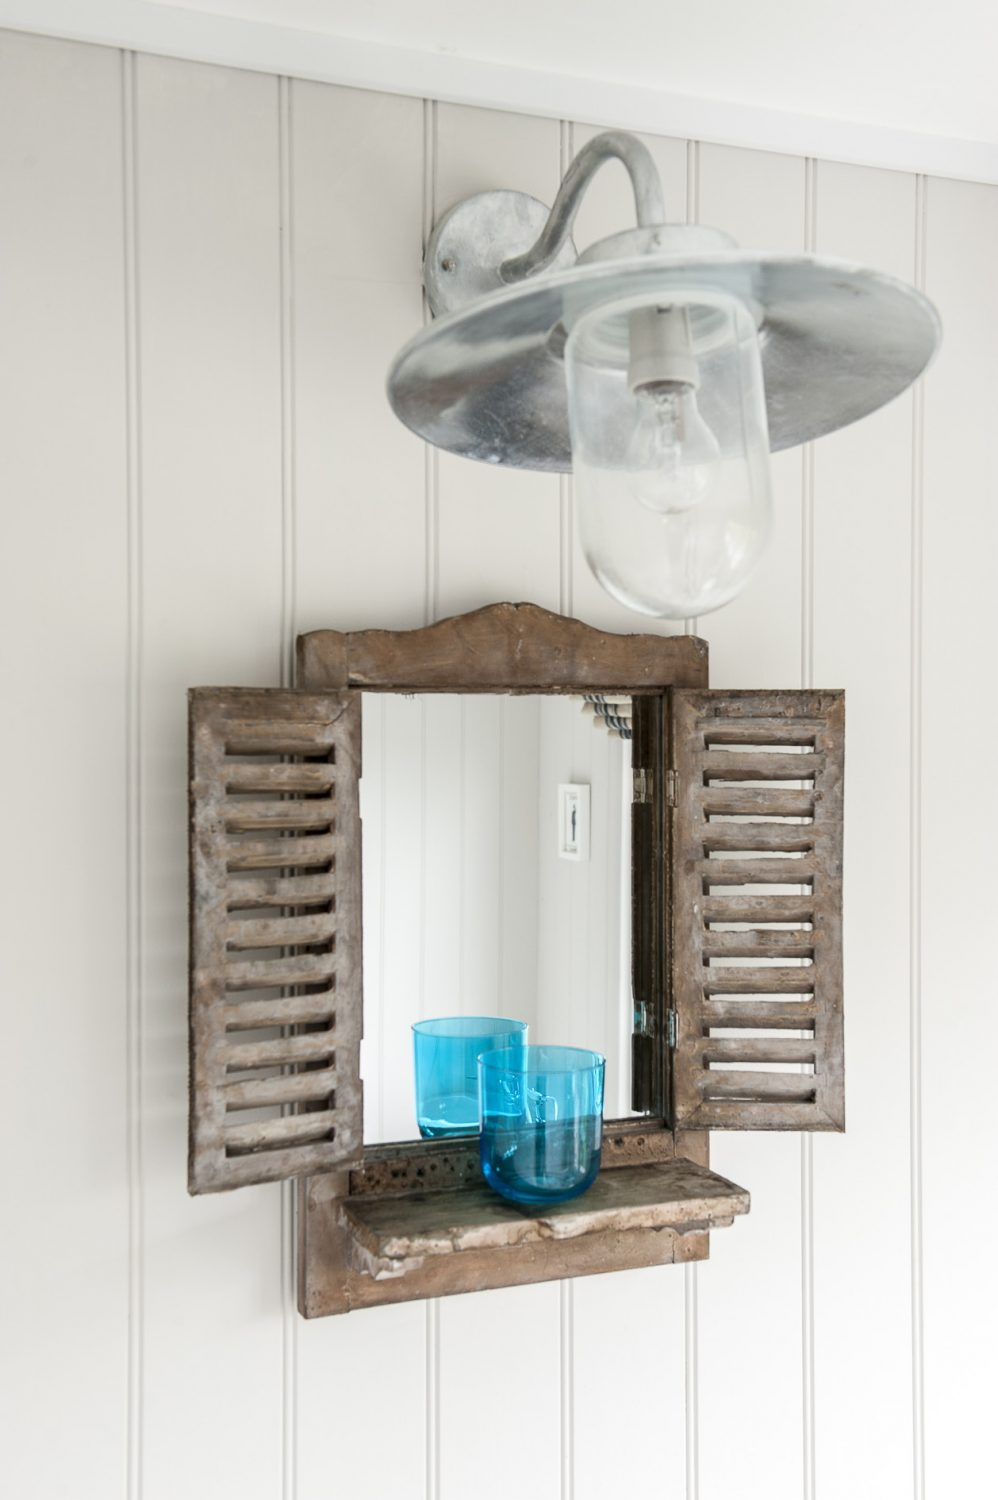 The shuttered mirror in the bathroom is from Strand Antiques and the industrial style light fitting is from Cox & Cox. The blue glass is from LSA International